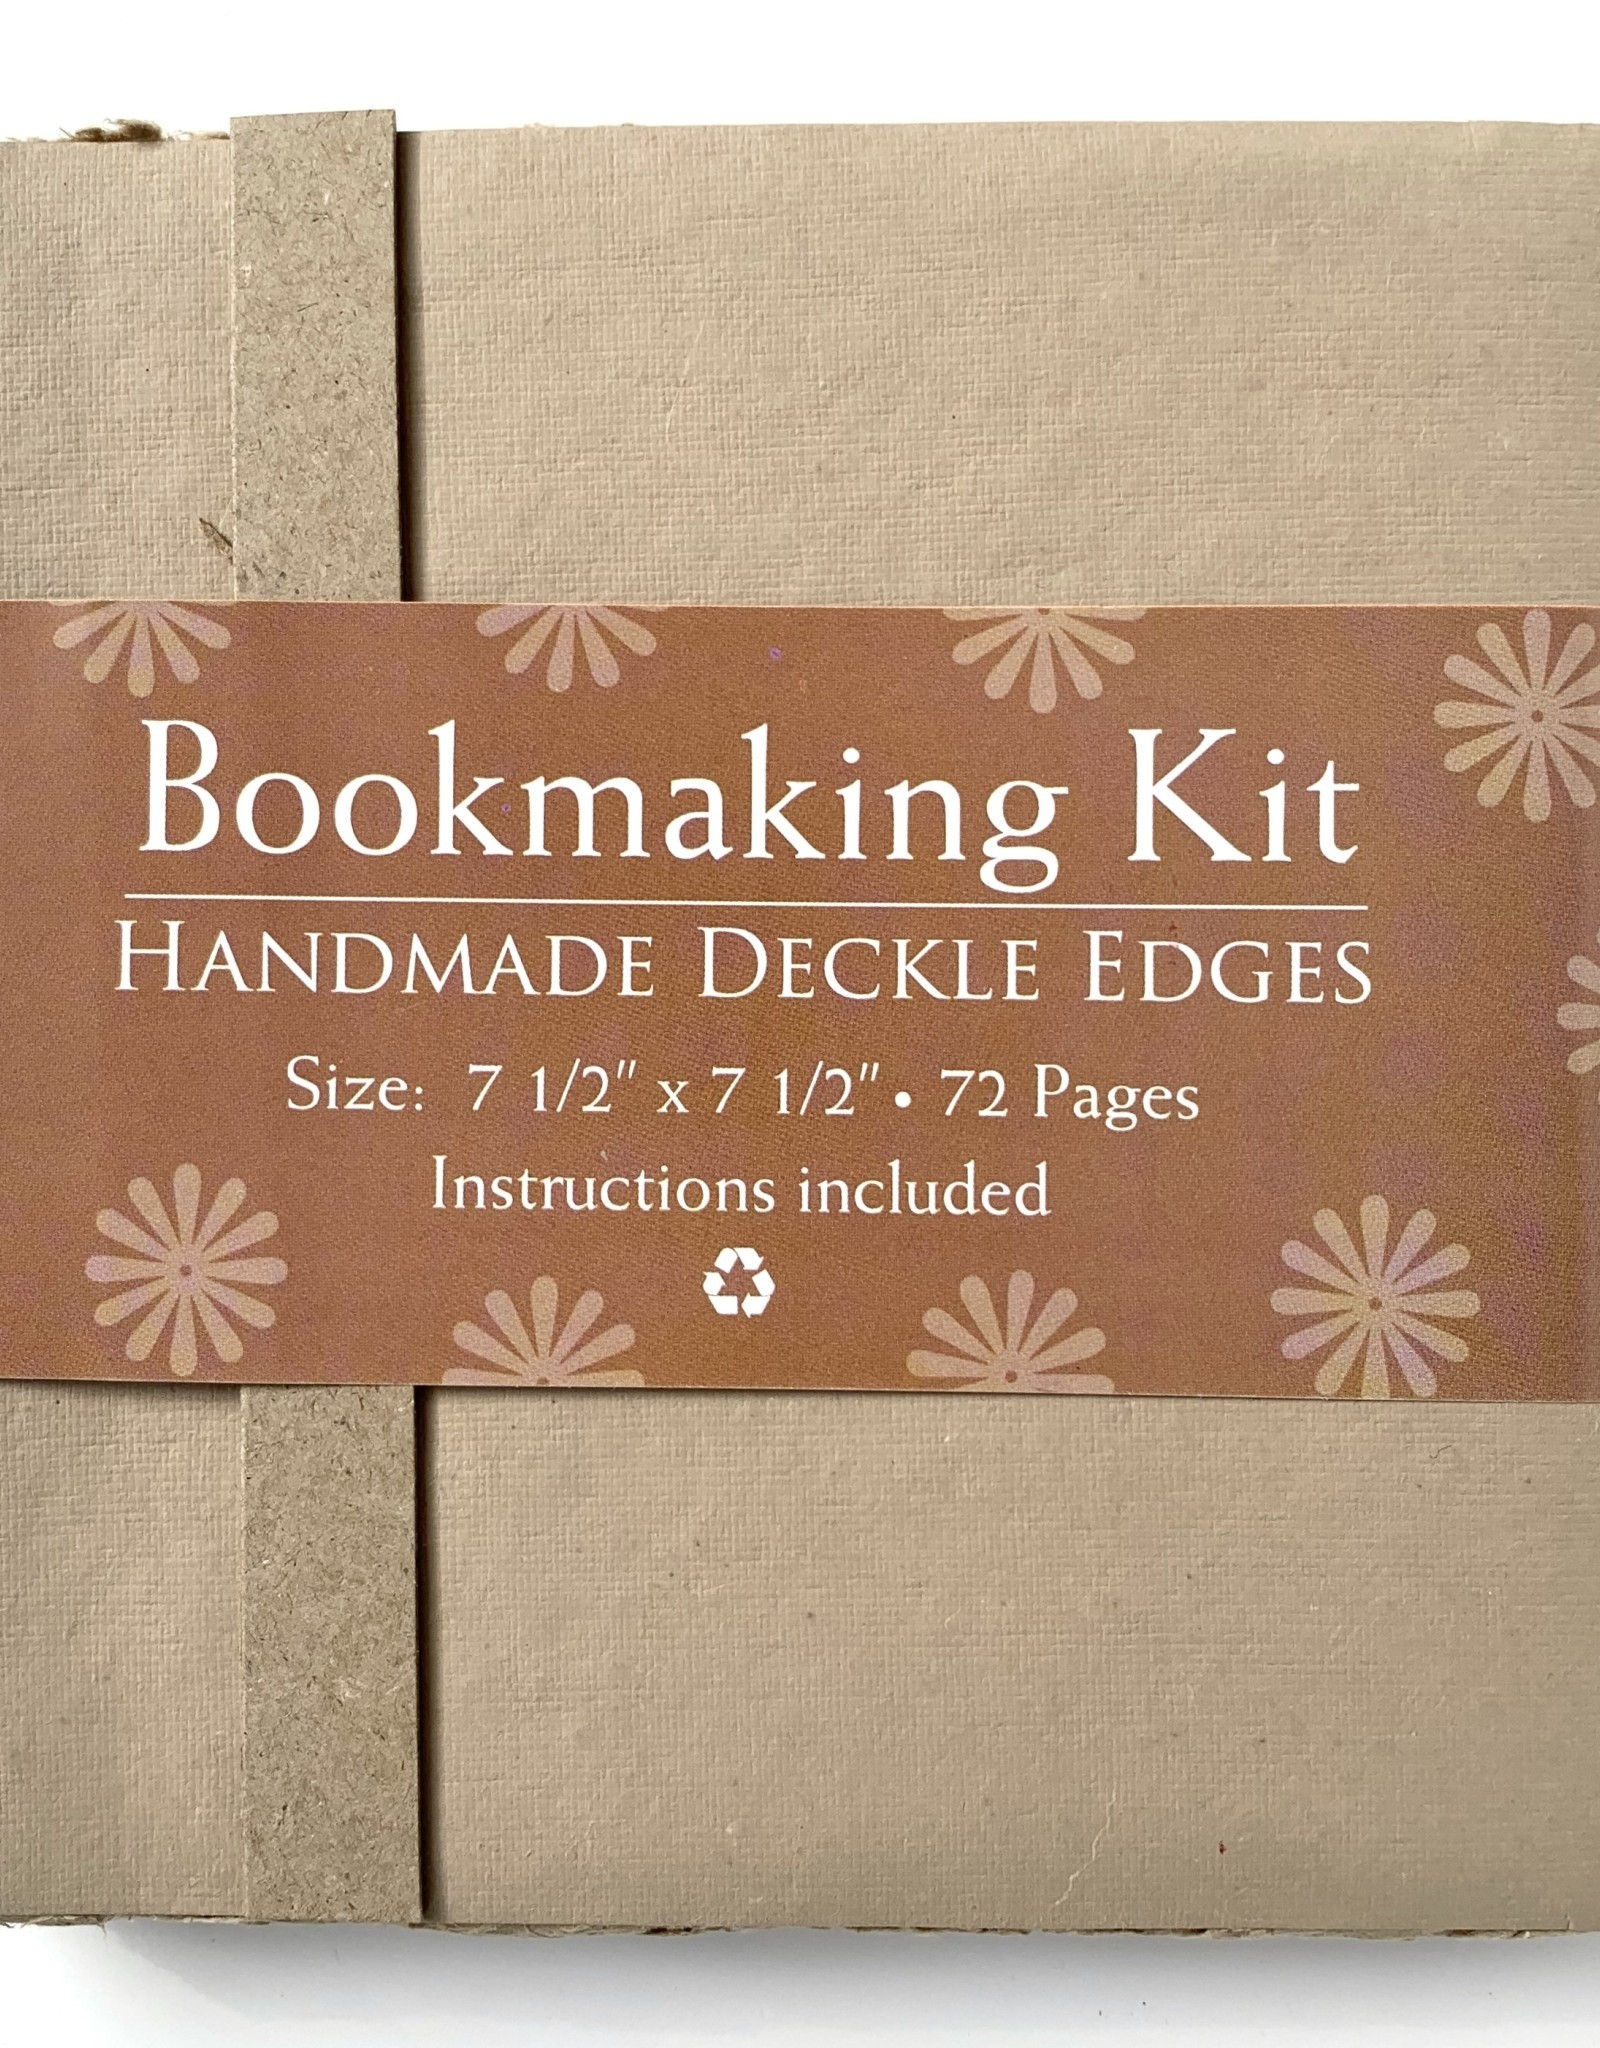 "Bookmaking Kit, 7.5"" x 7.5"", 72 Tan Pages"